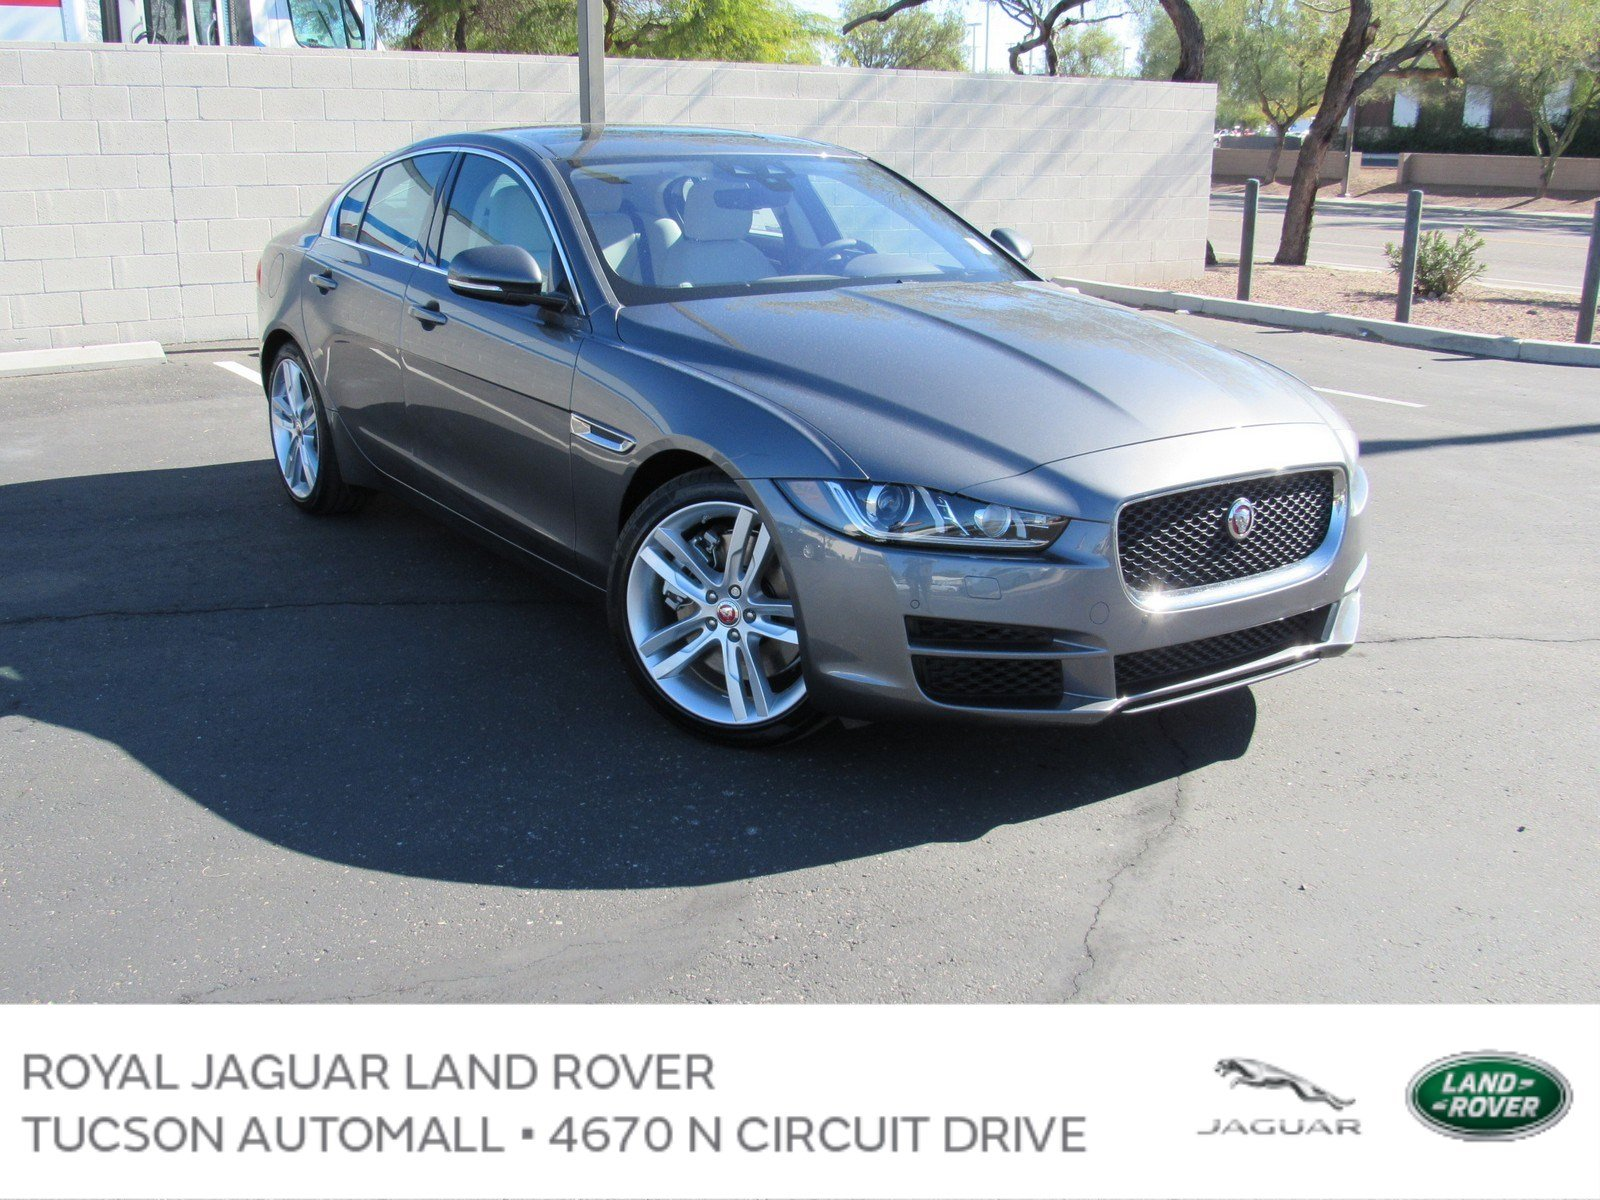 New 2019 Jaguar Xe 30t Premium Sedan In Tucson J2225 Royal